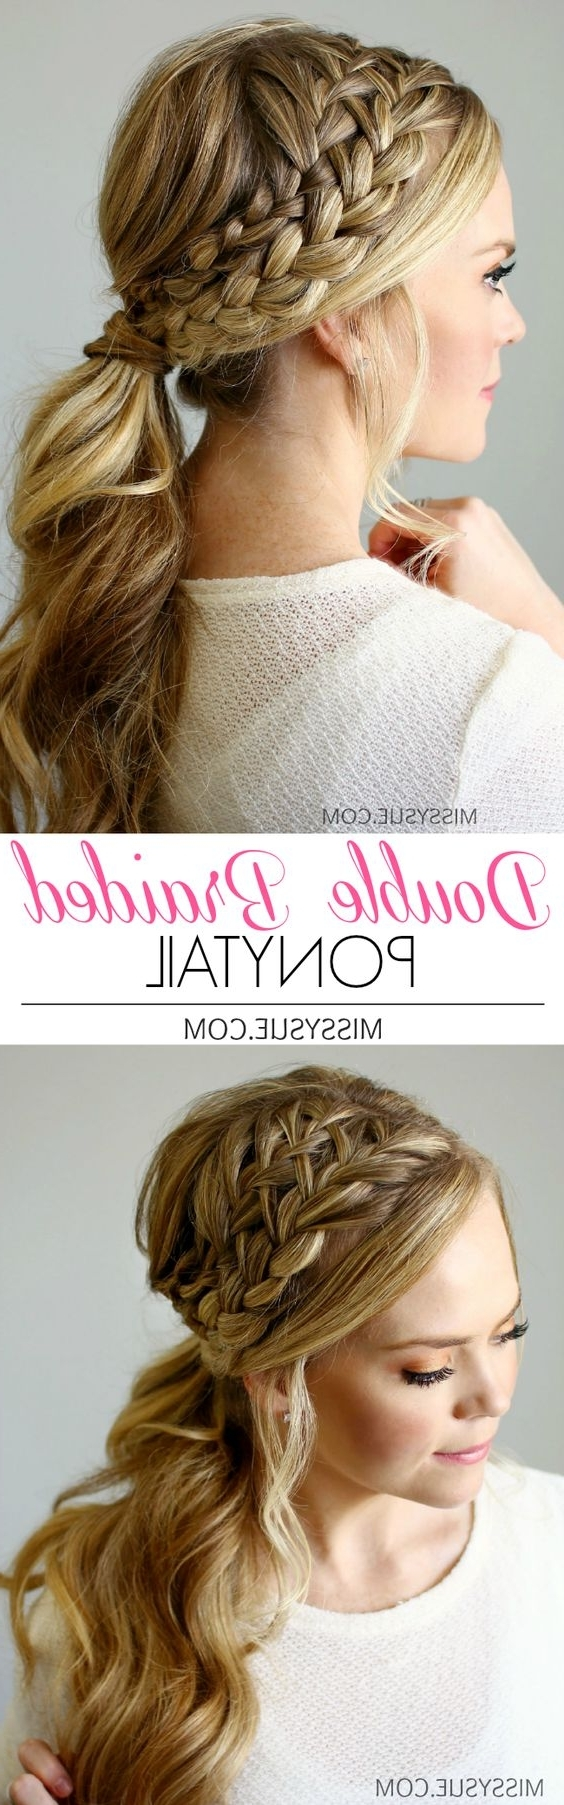 Current Pretty Messy Pony Hairstyles With Braided Section For 30 Simple Easy Ponytail Hairstyles For Lazy Girls – Ponytail Ideas (View 6 of 20)